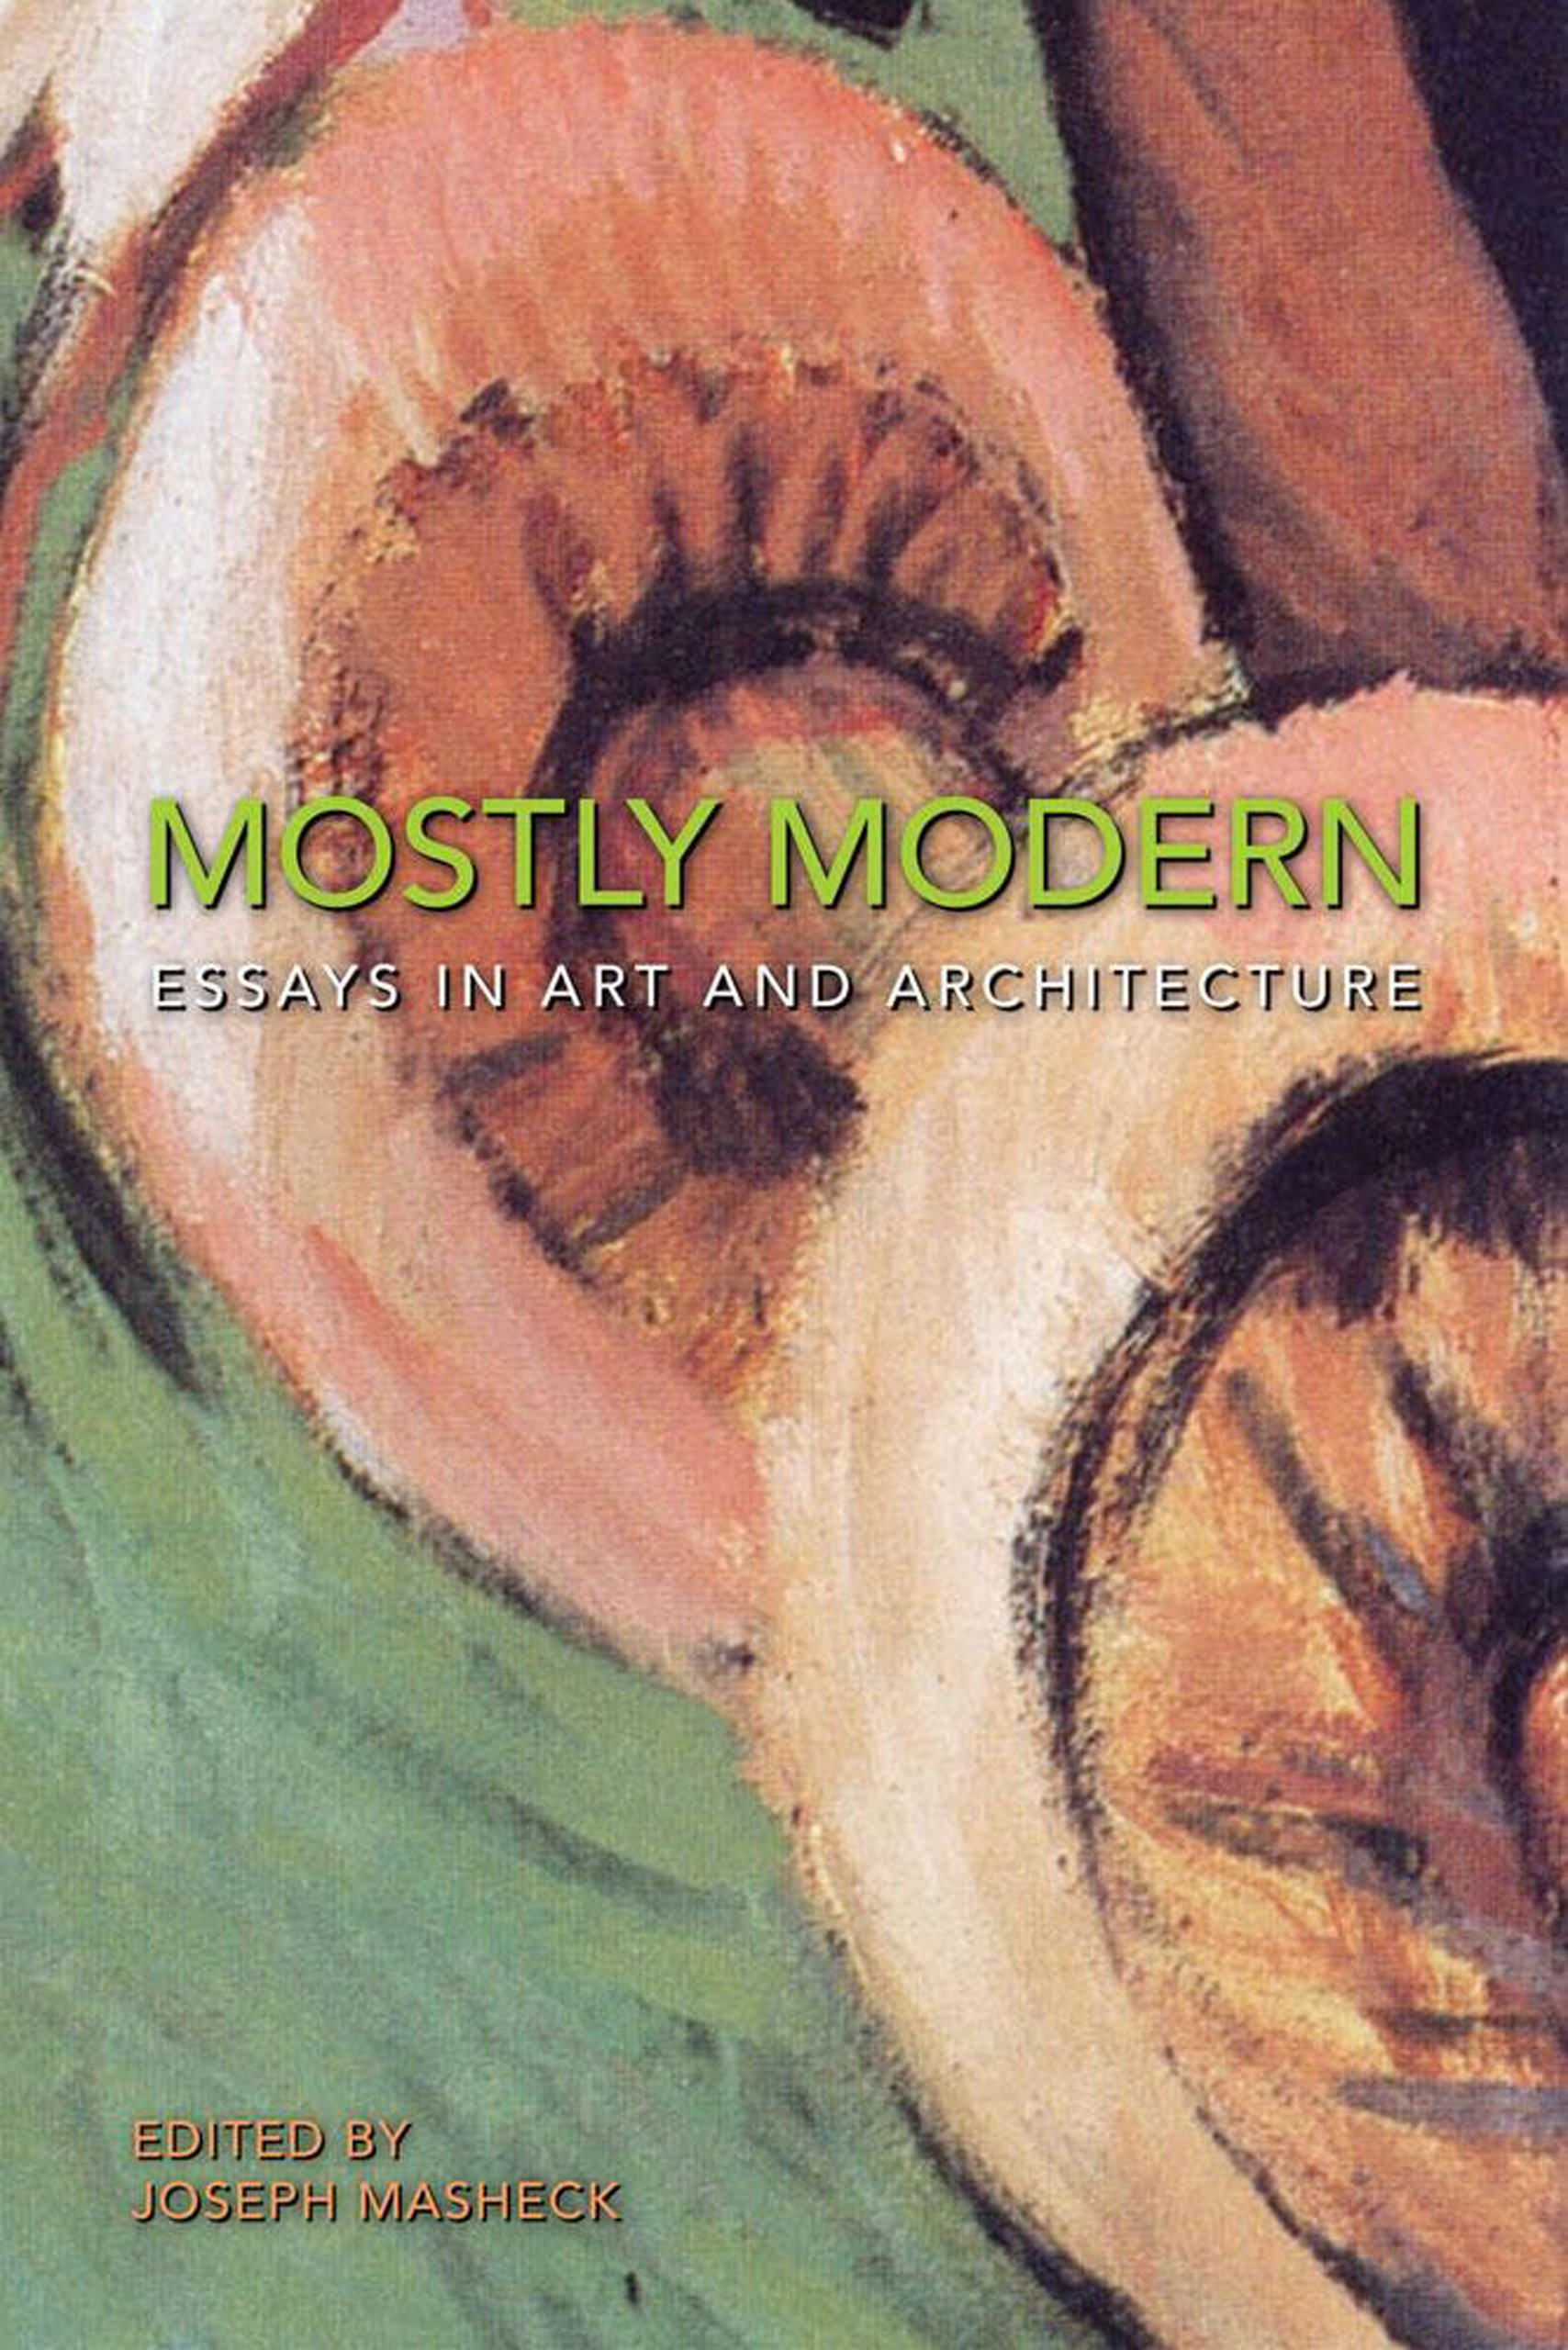 mostly modern essays in art and architecture joseph masheck  mostly modern essays in art and architecture joseph masheck aleksandr naymark 9781555953928 com books